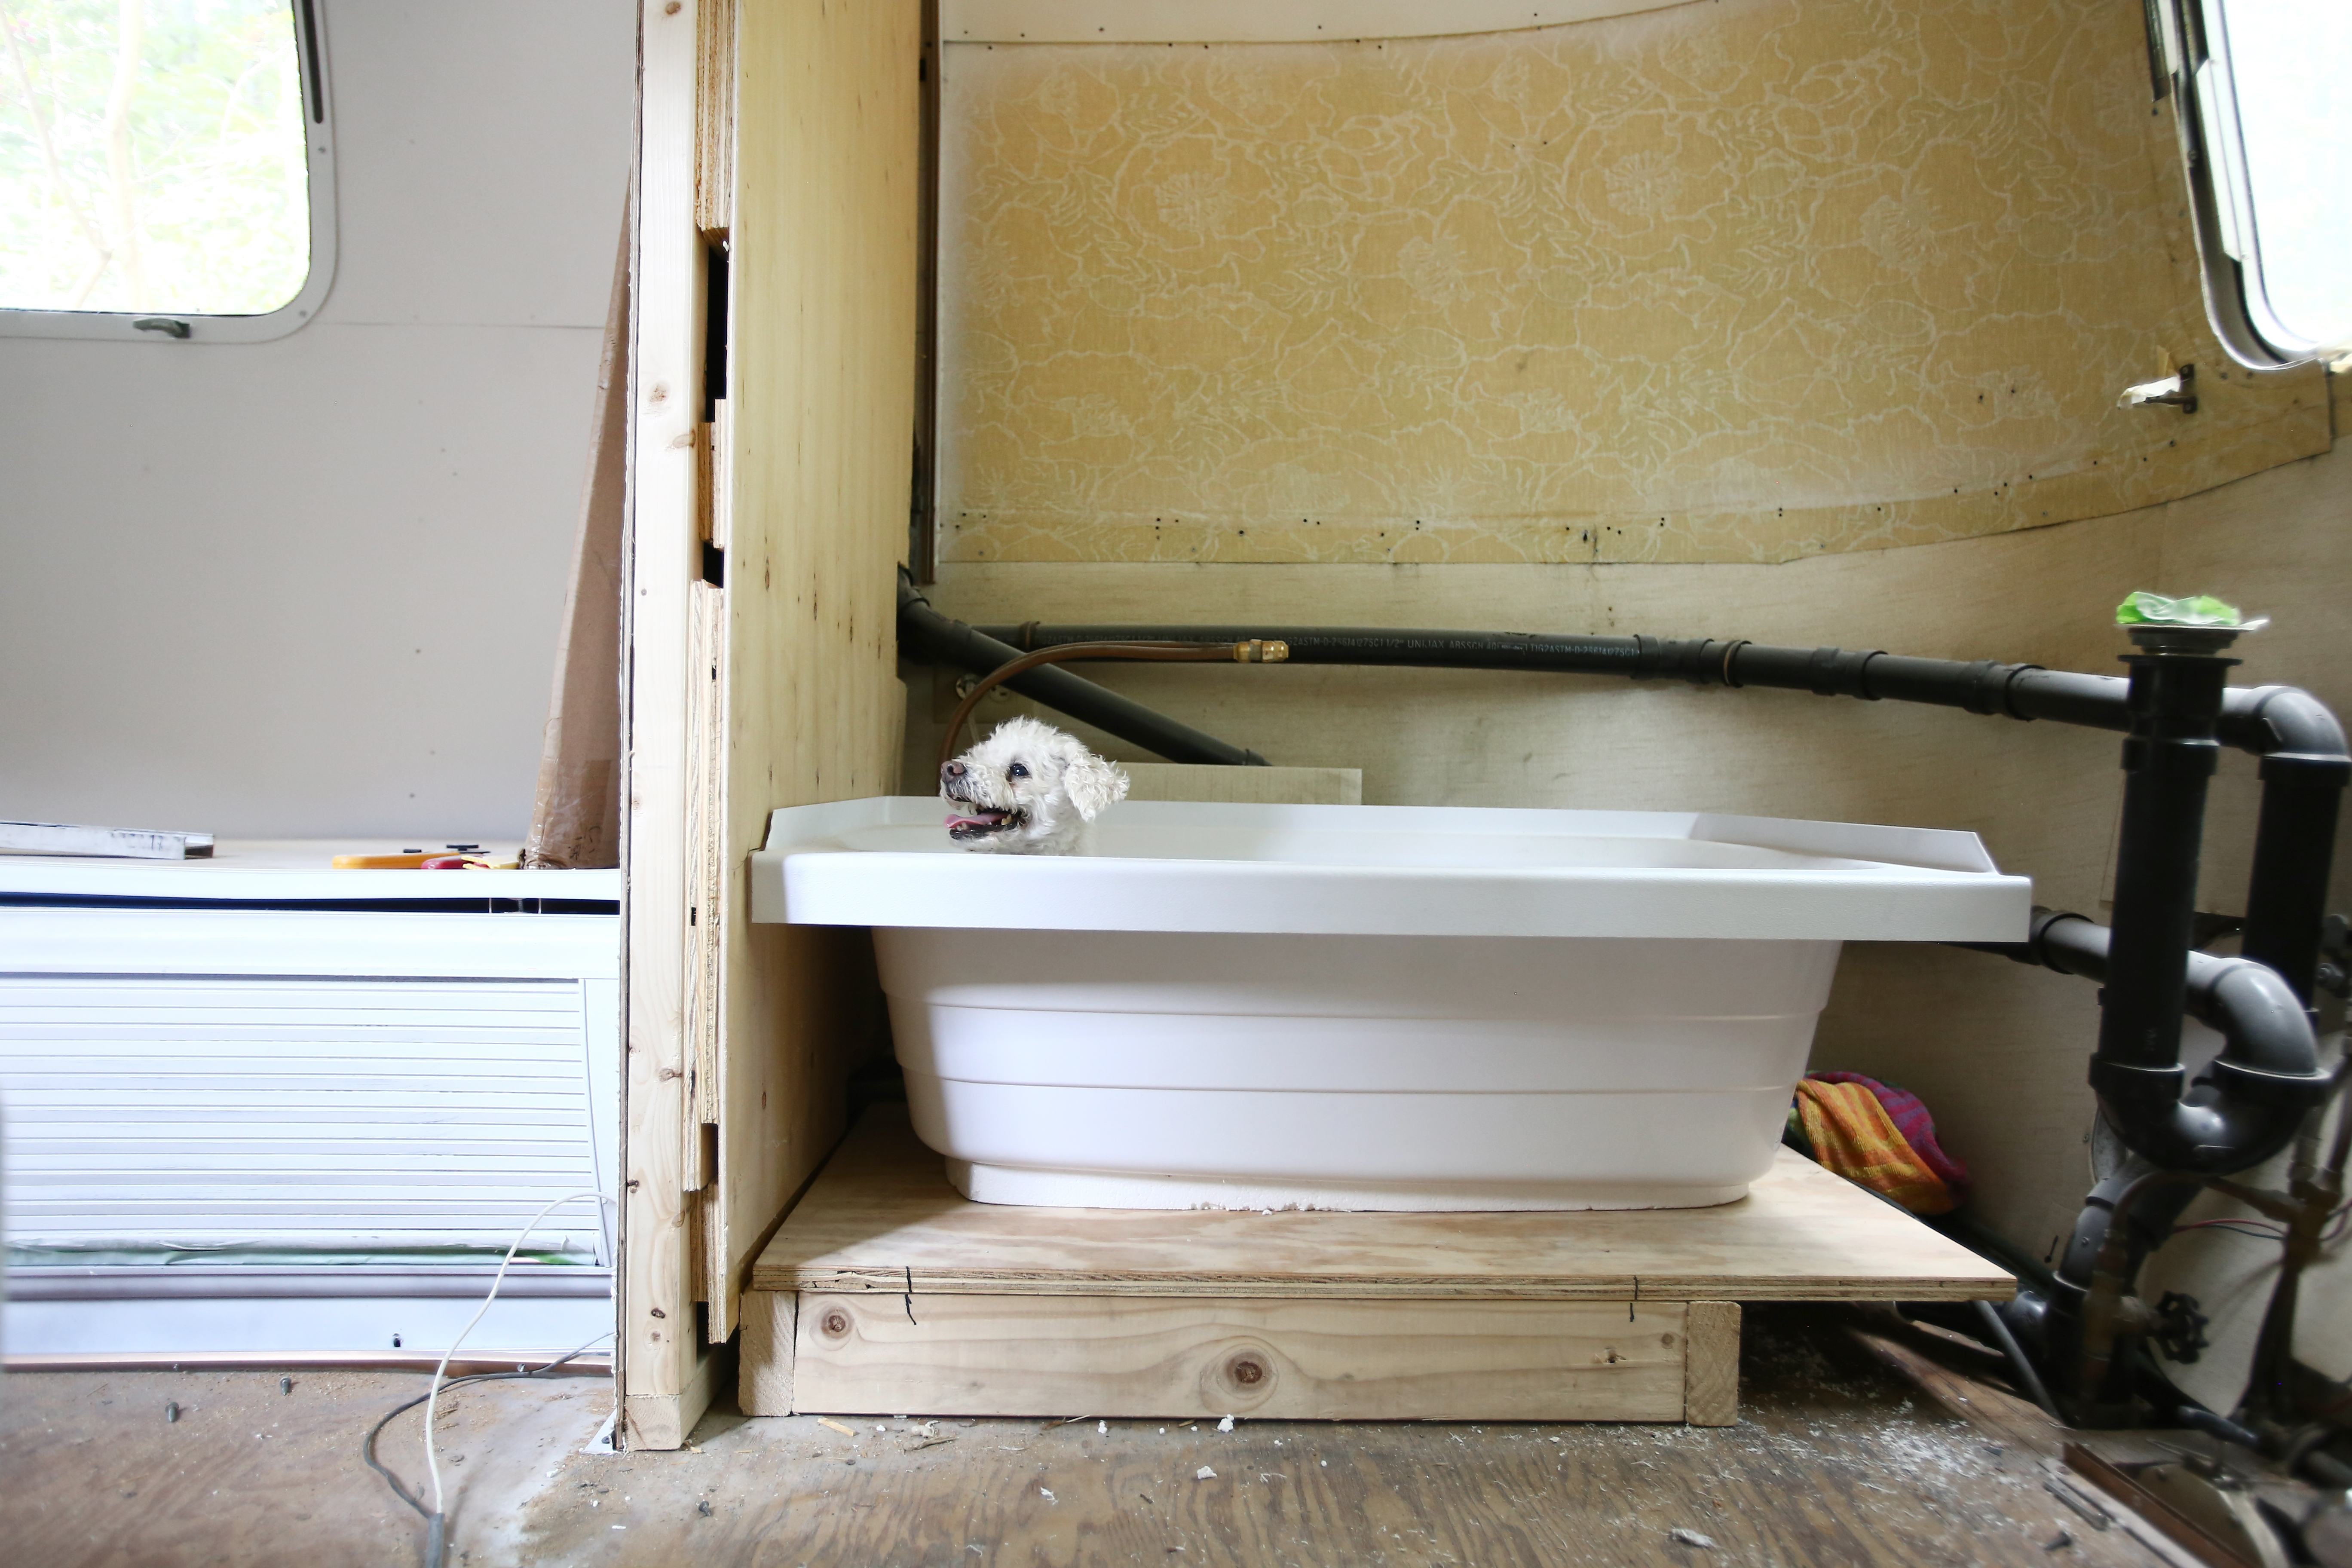 Airstream Bathroom Remodel | Before & After | Mavis the